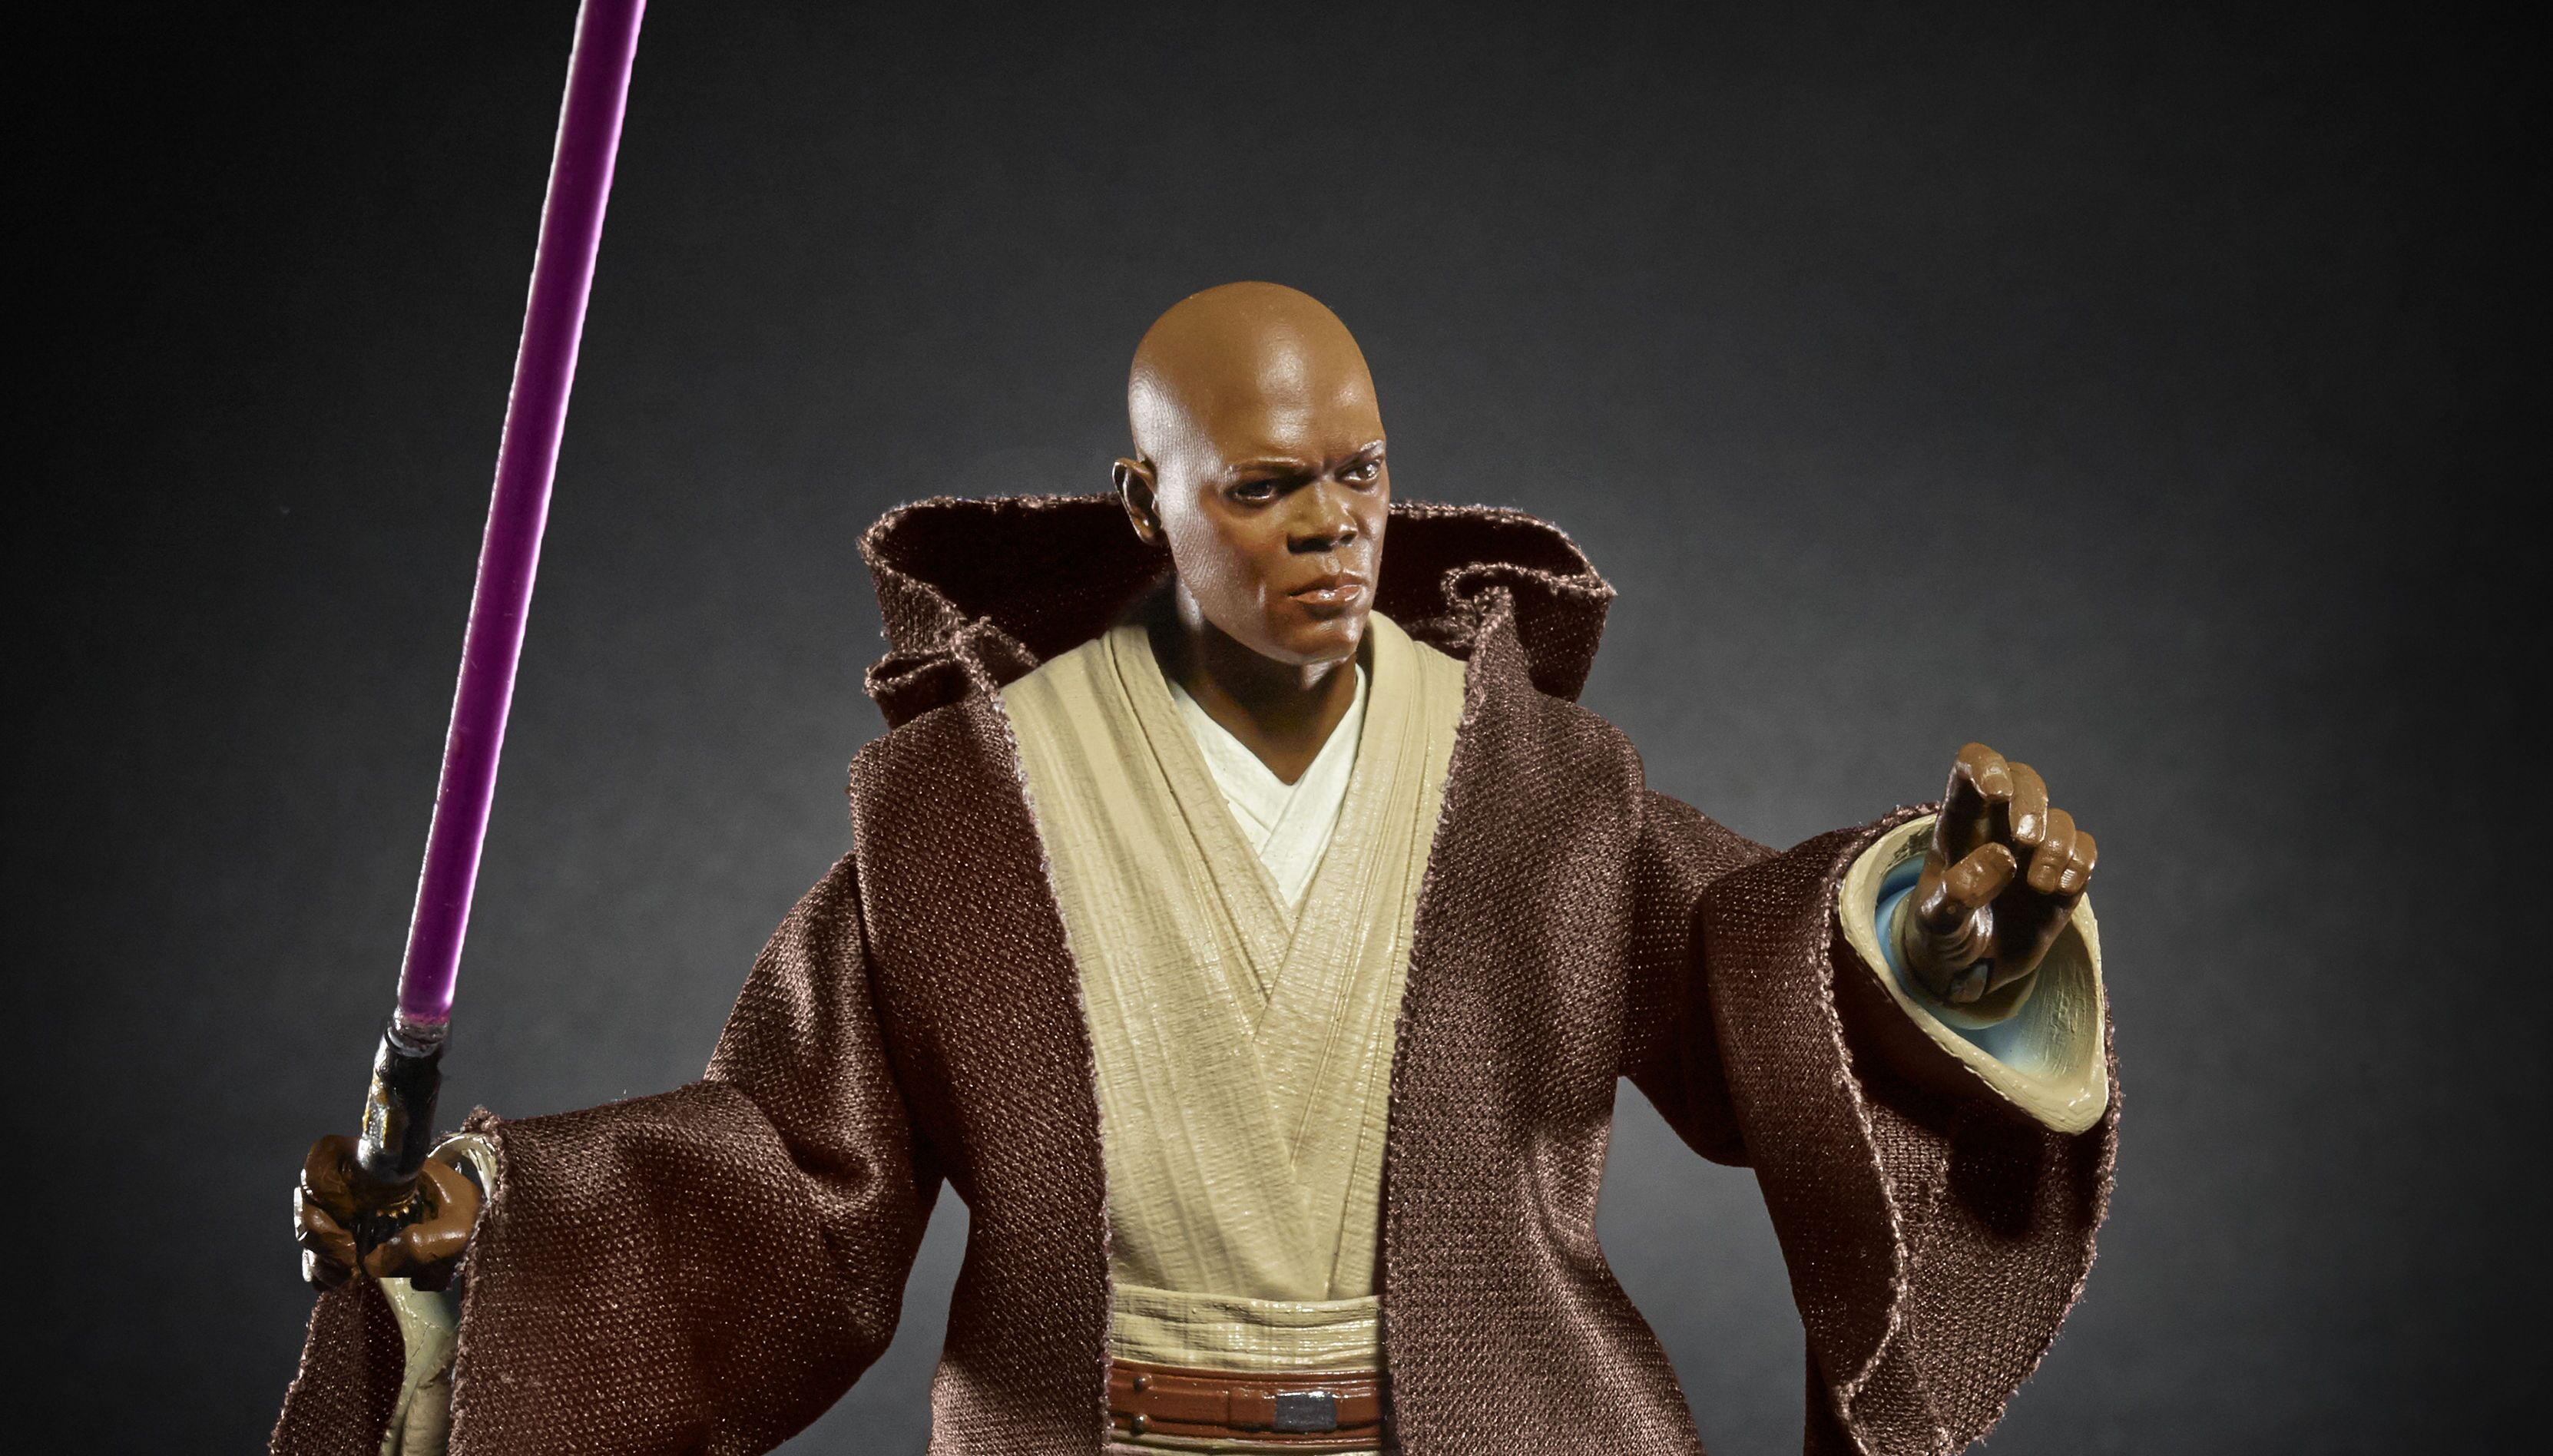 Star Wars Toys: More prequel characters are coming to Hasbro's The Black Series line